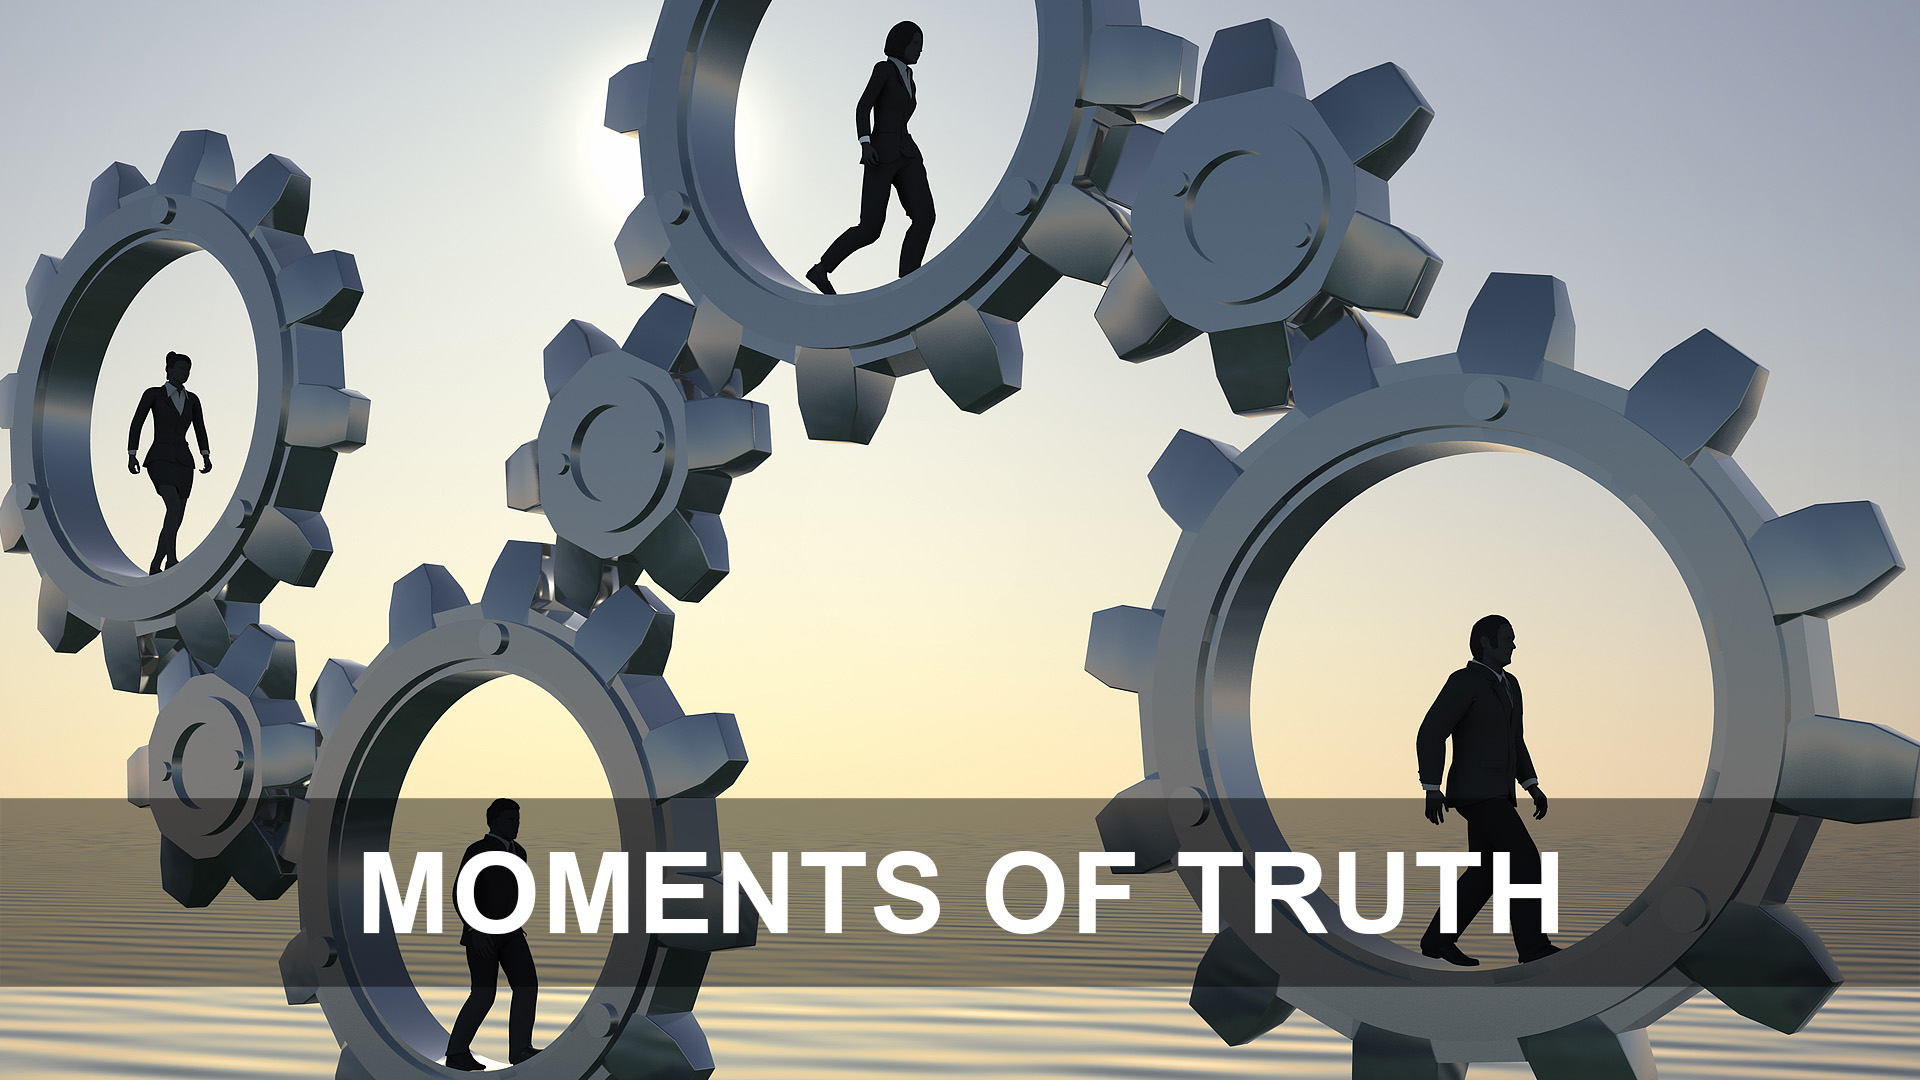 Moments of Truth - KAM.jpg